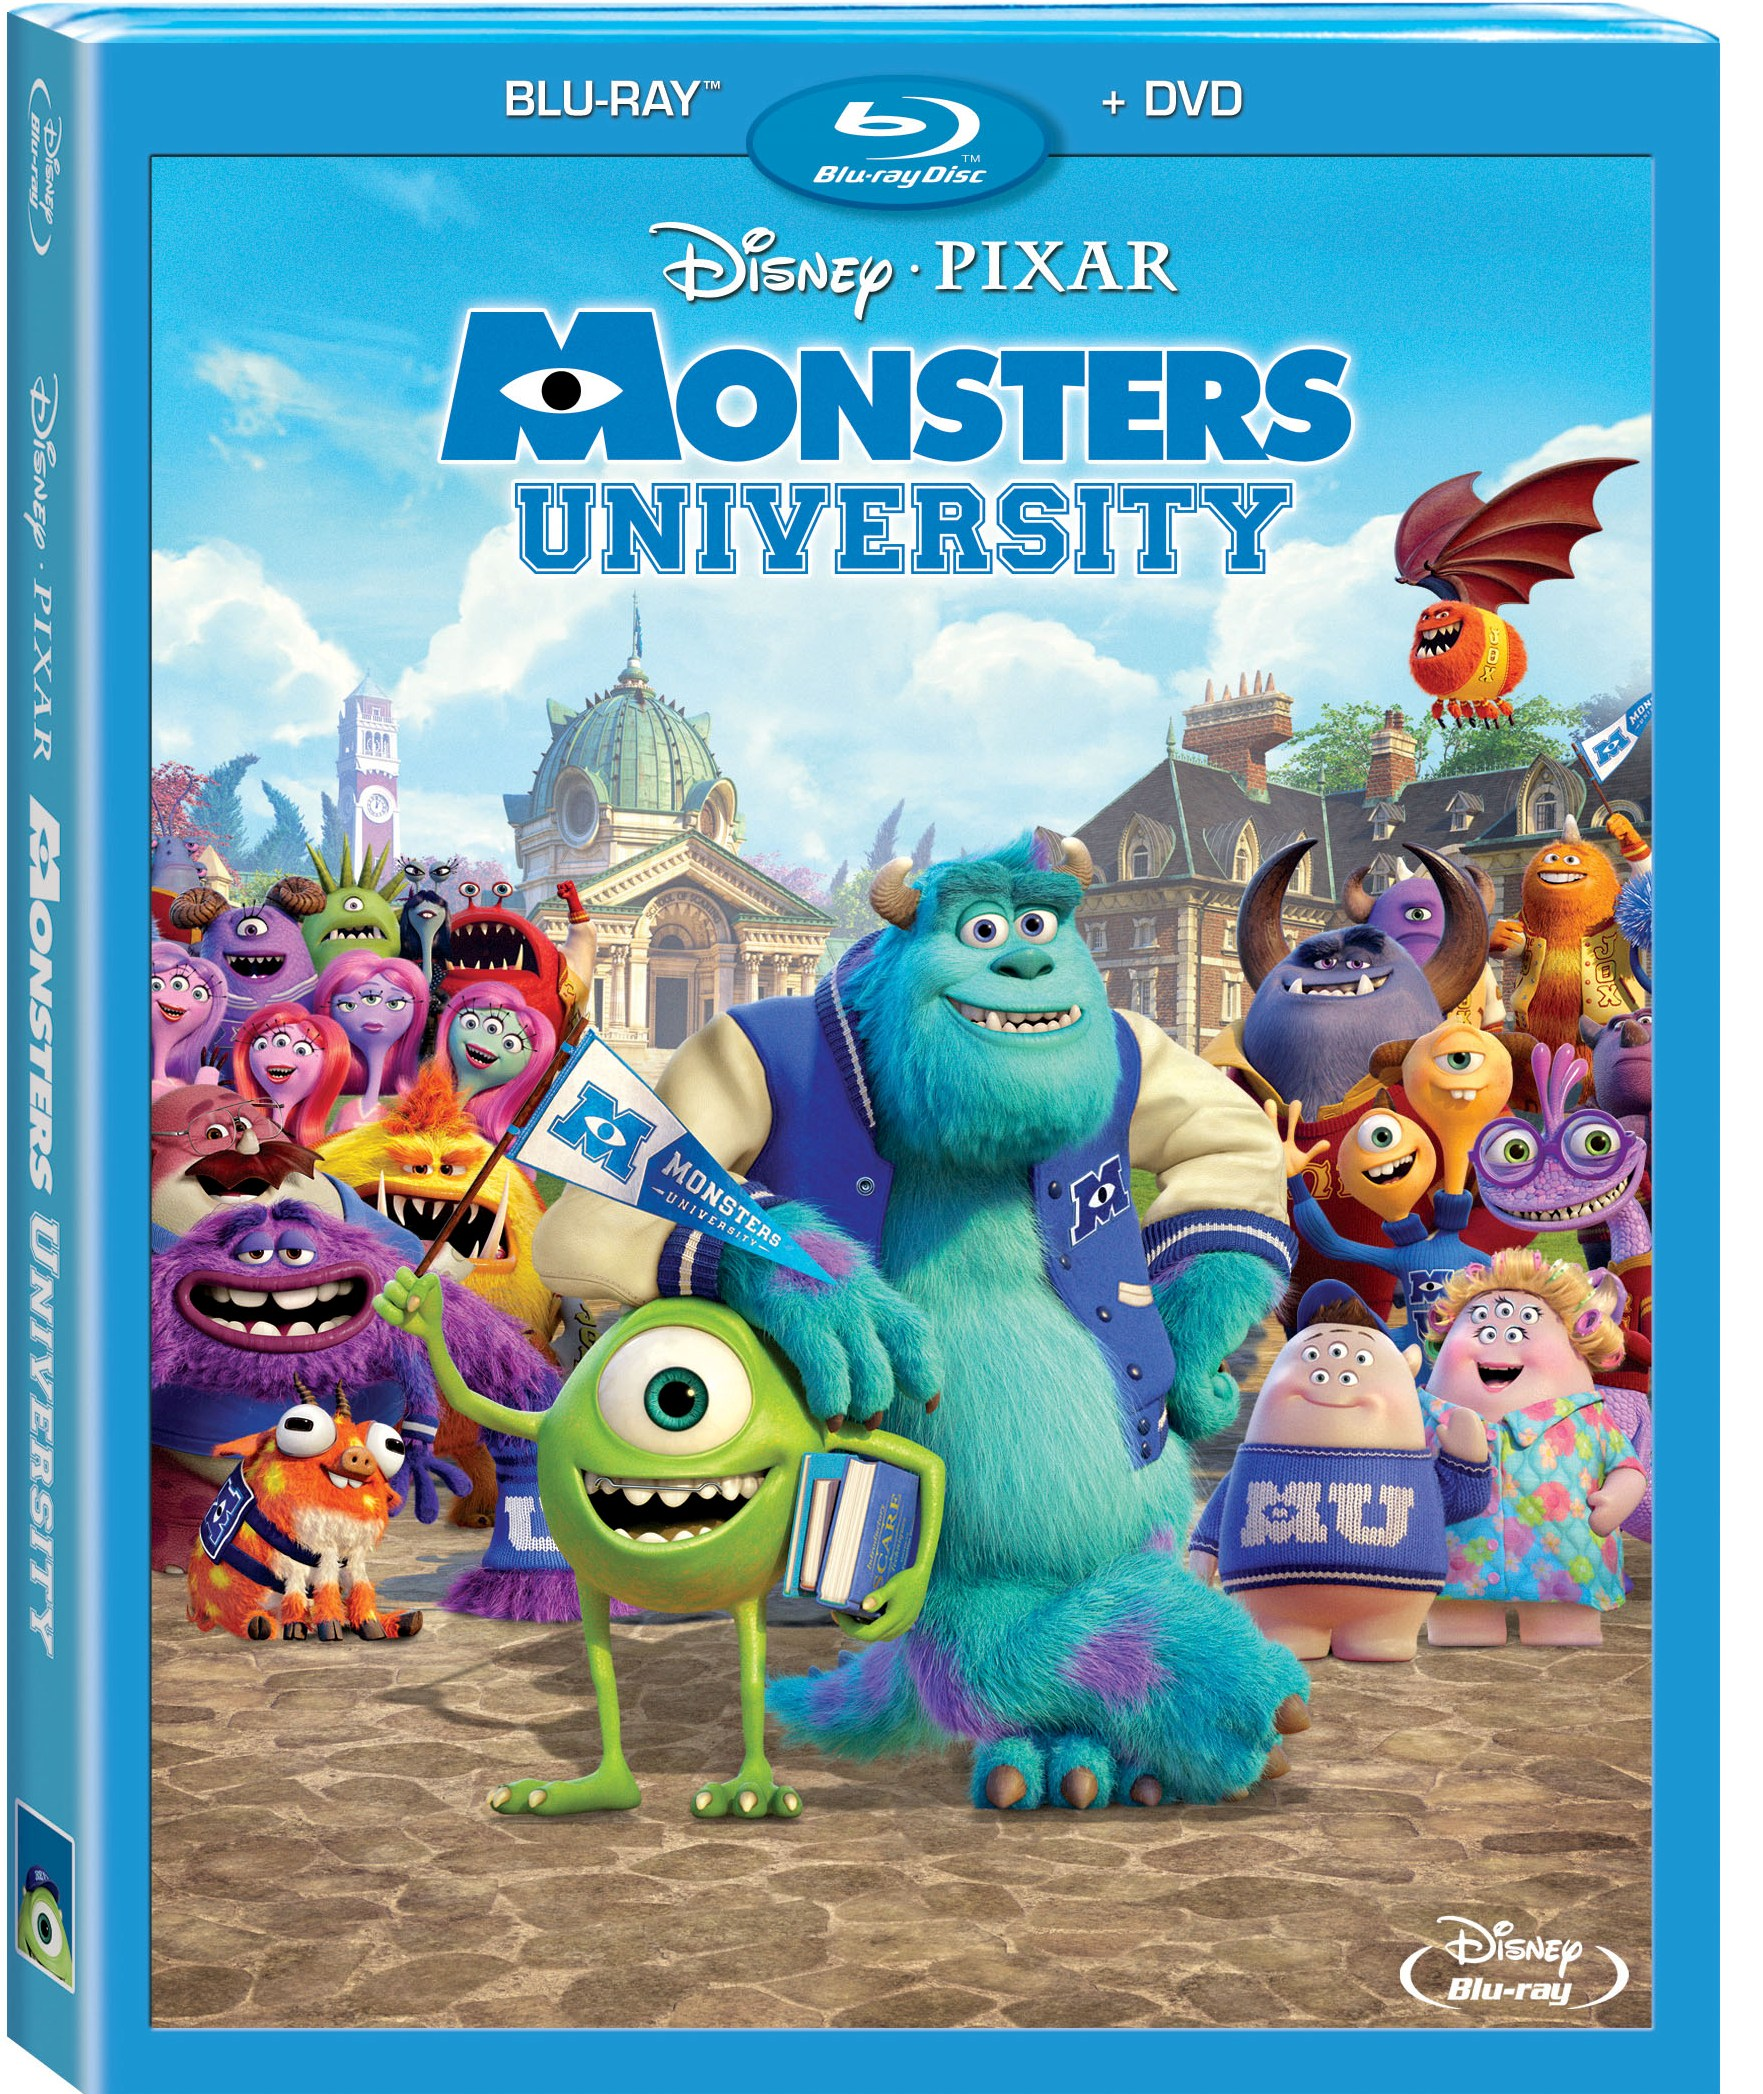 Monsters University Blu-ray Combo Art